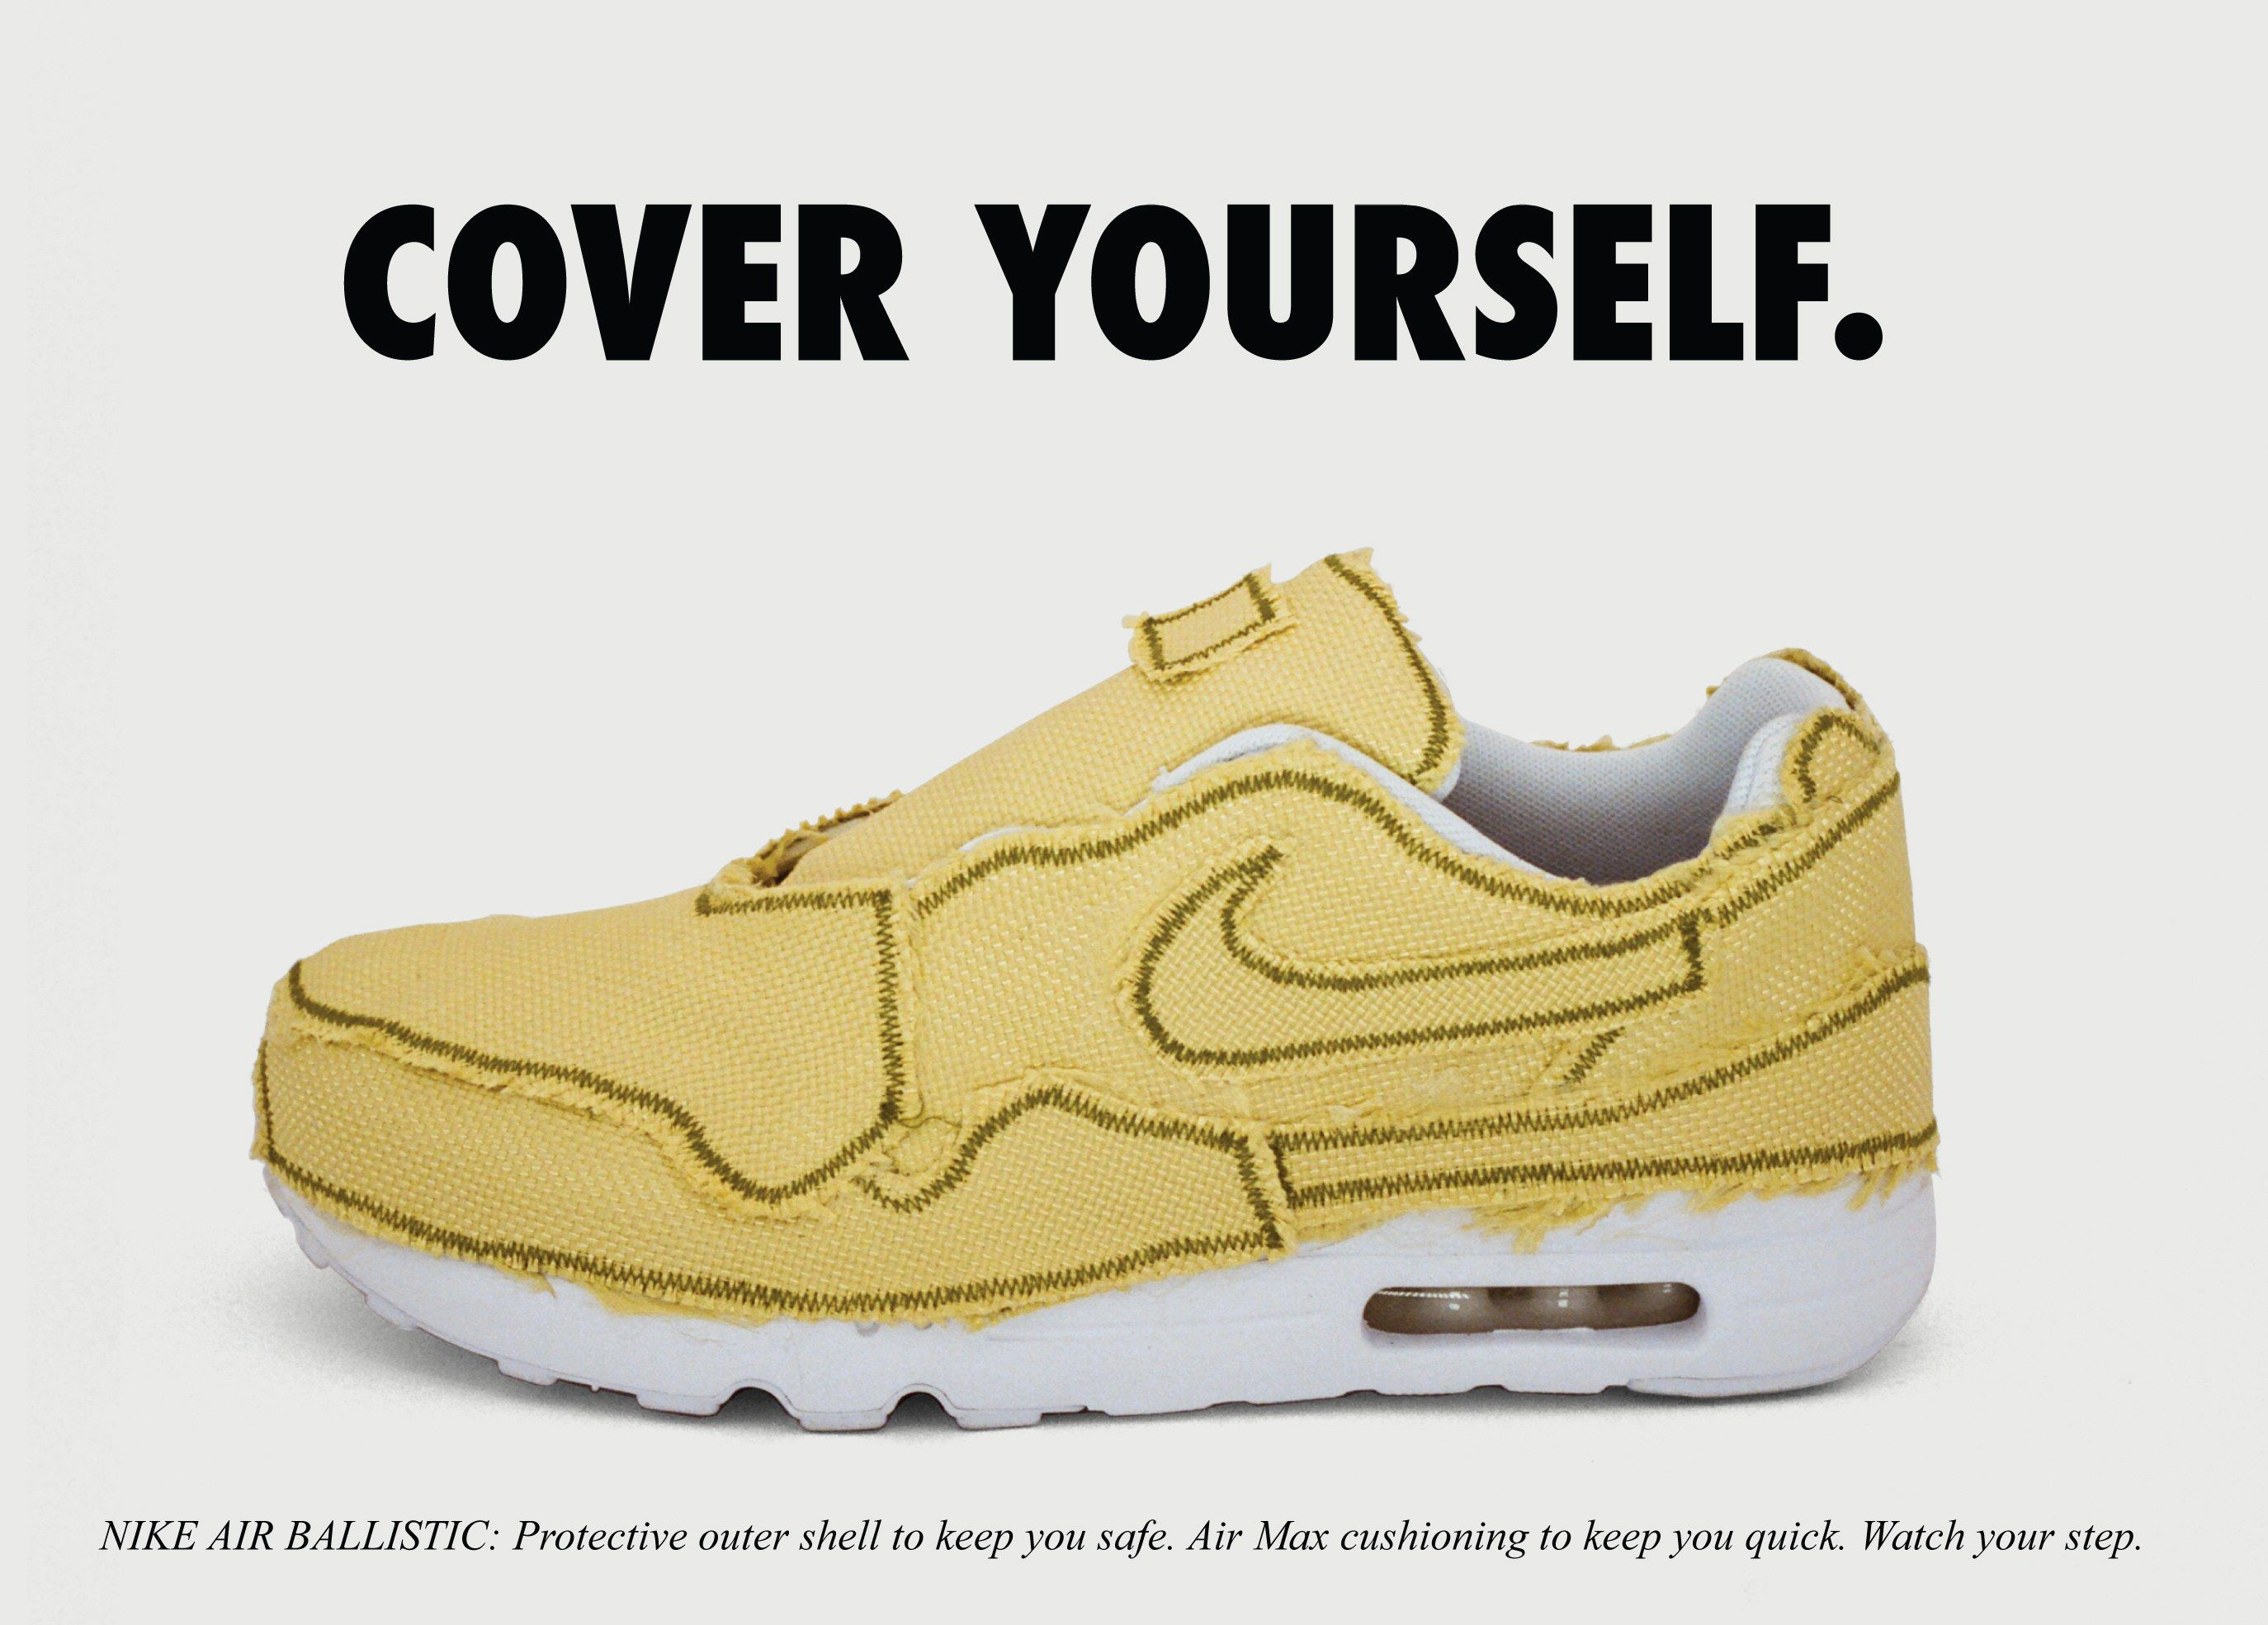 Nike Celebrates Air Max 30th Anniversary with Fake Ads